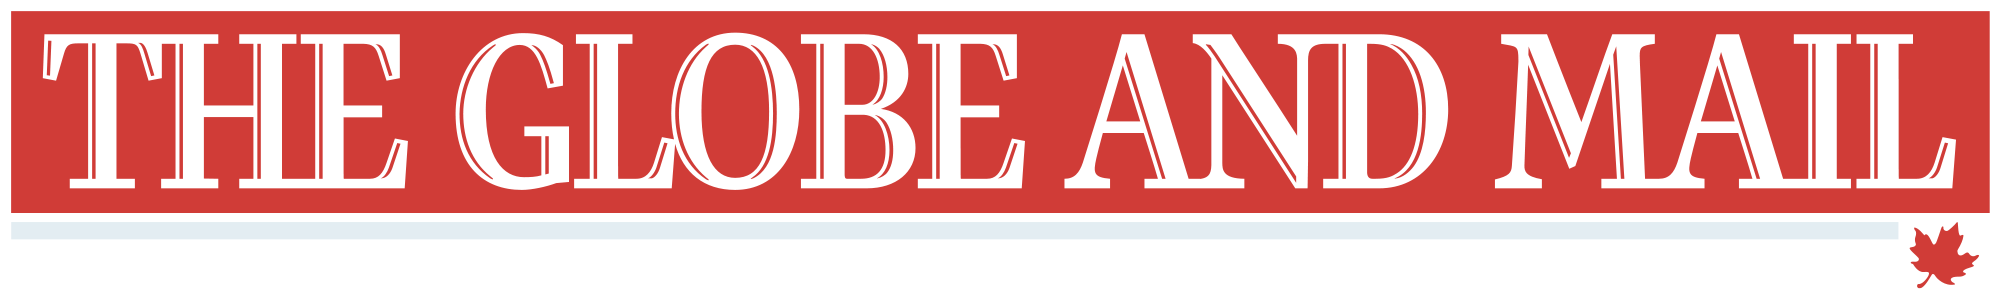 Image result for globe and mail logo transparent